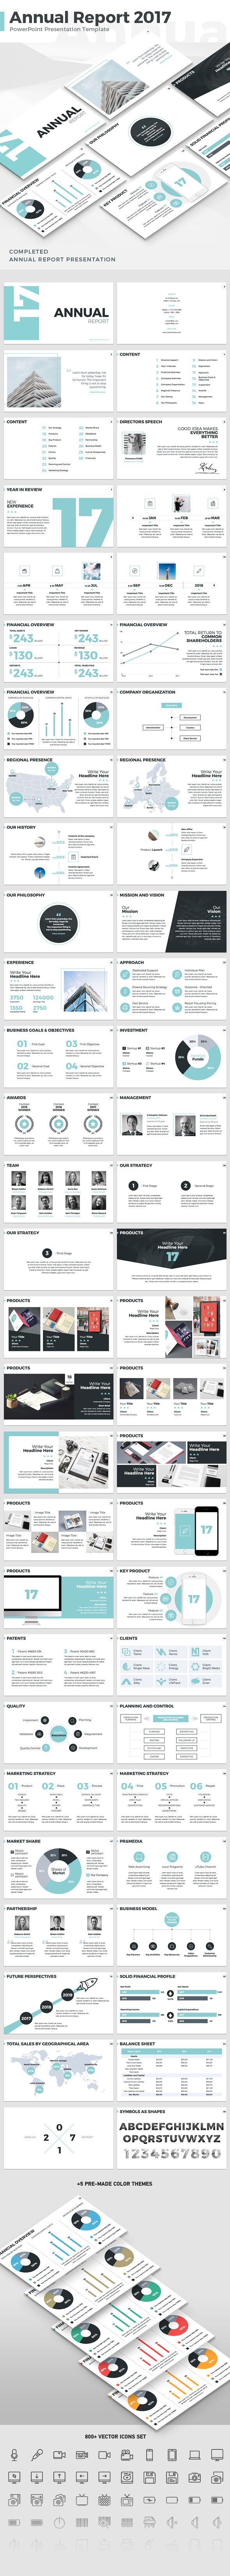 Annual Report 2017  PowerPoint Template — Powerpoint PPTX #project #deck • Download ➝ https://graphicriver.net/item/annual-report-2017-powerpoint-template/19113526?ref=pxcr